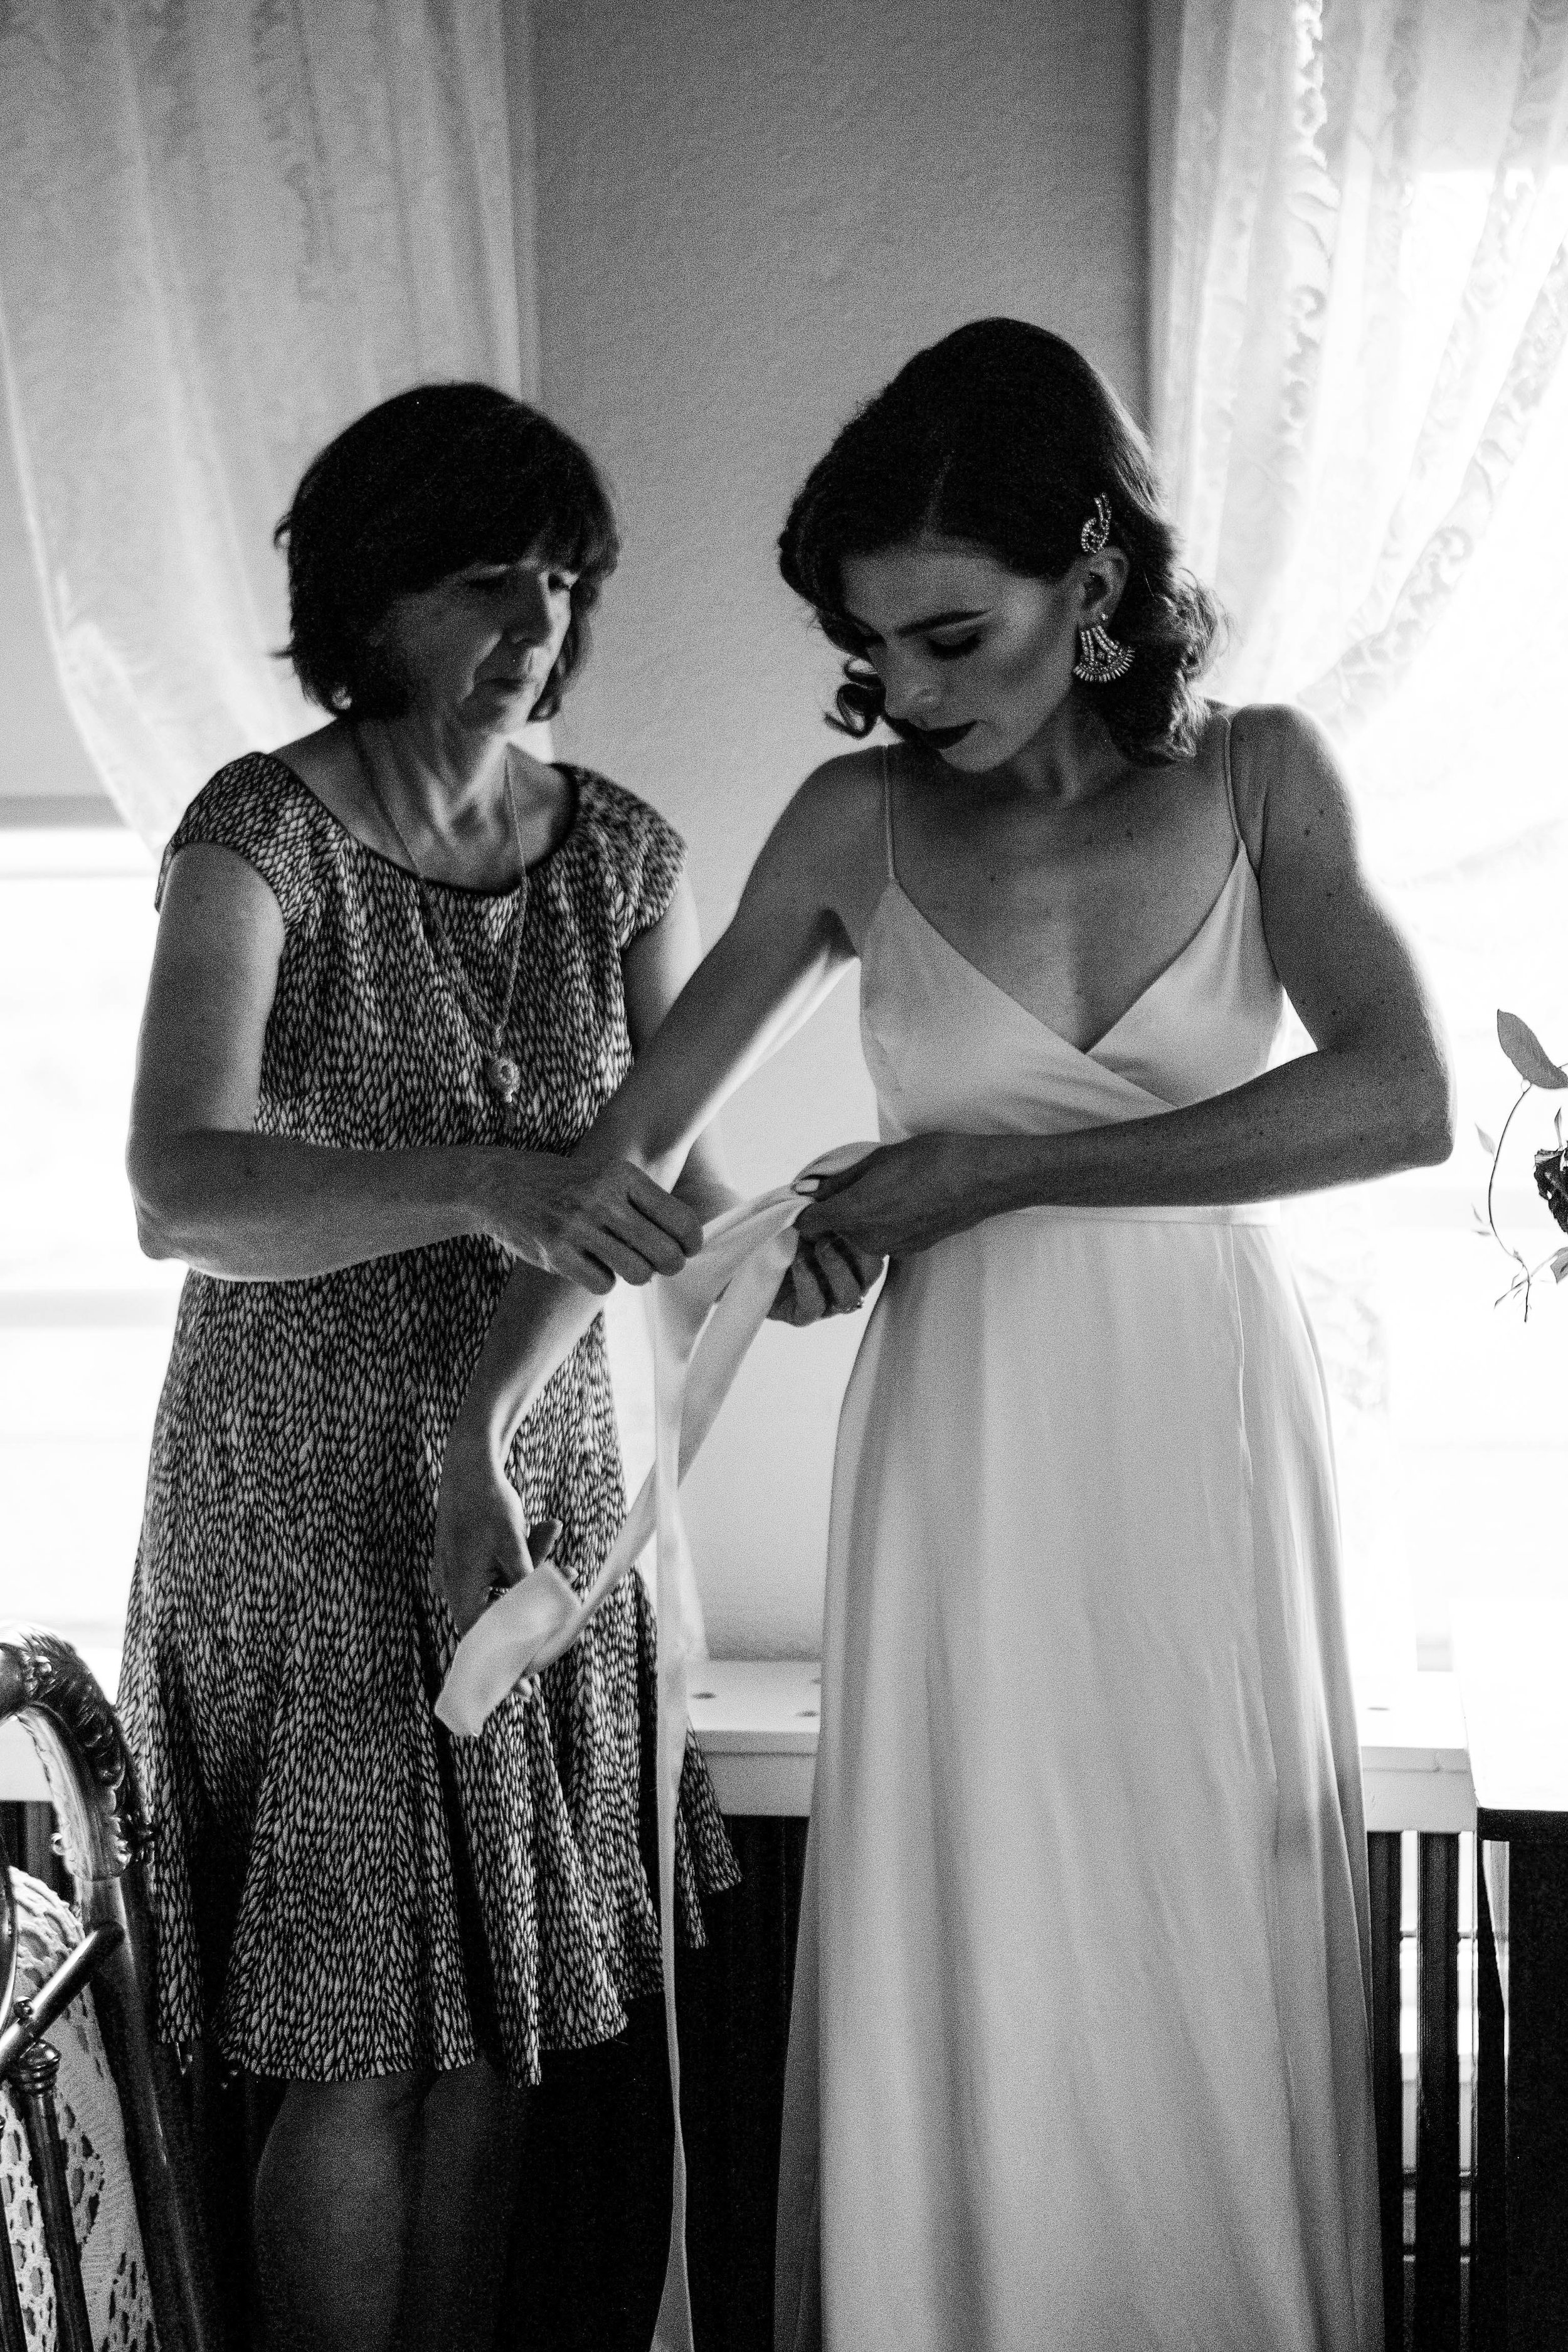 mother & daughter bridals - Windy Peak Vintage